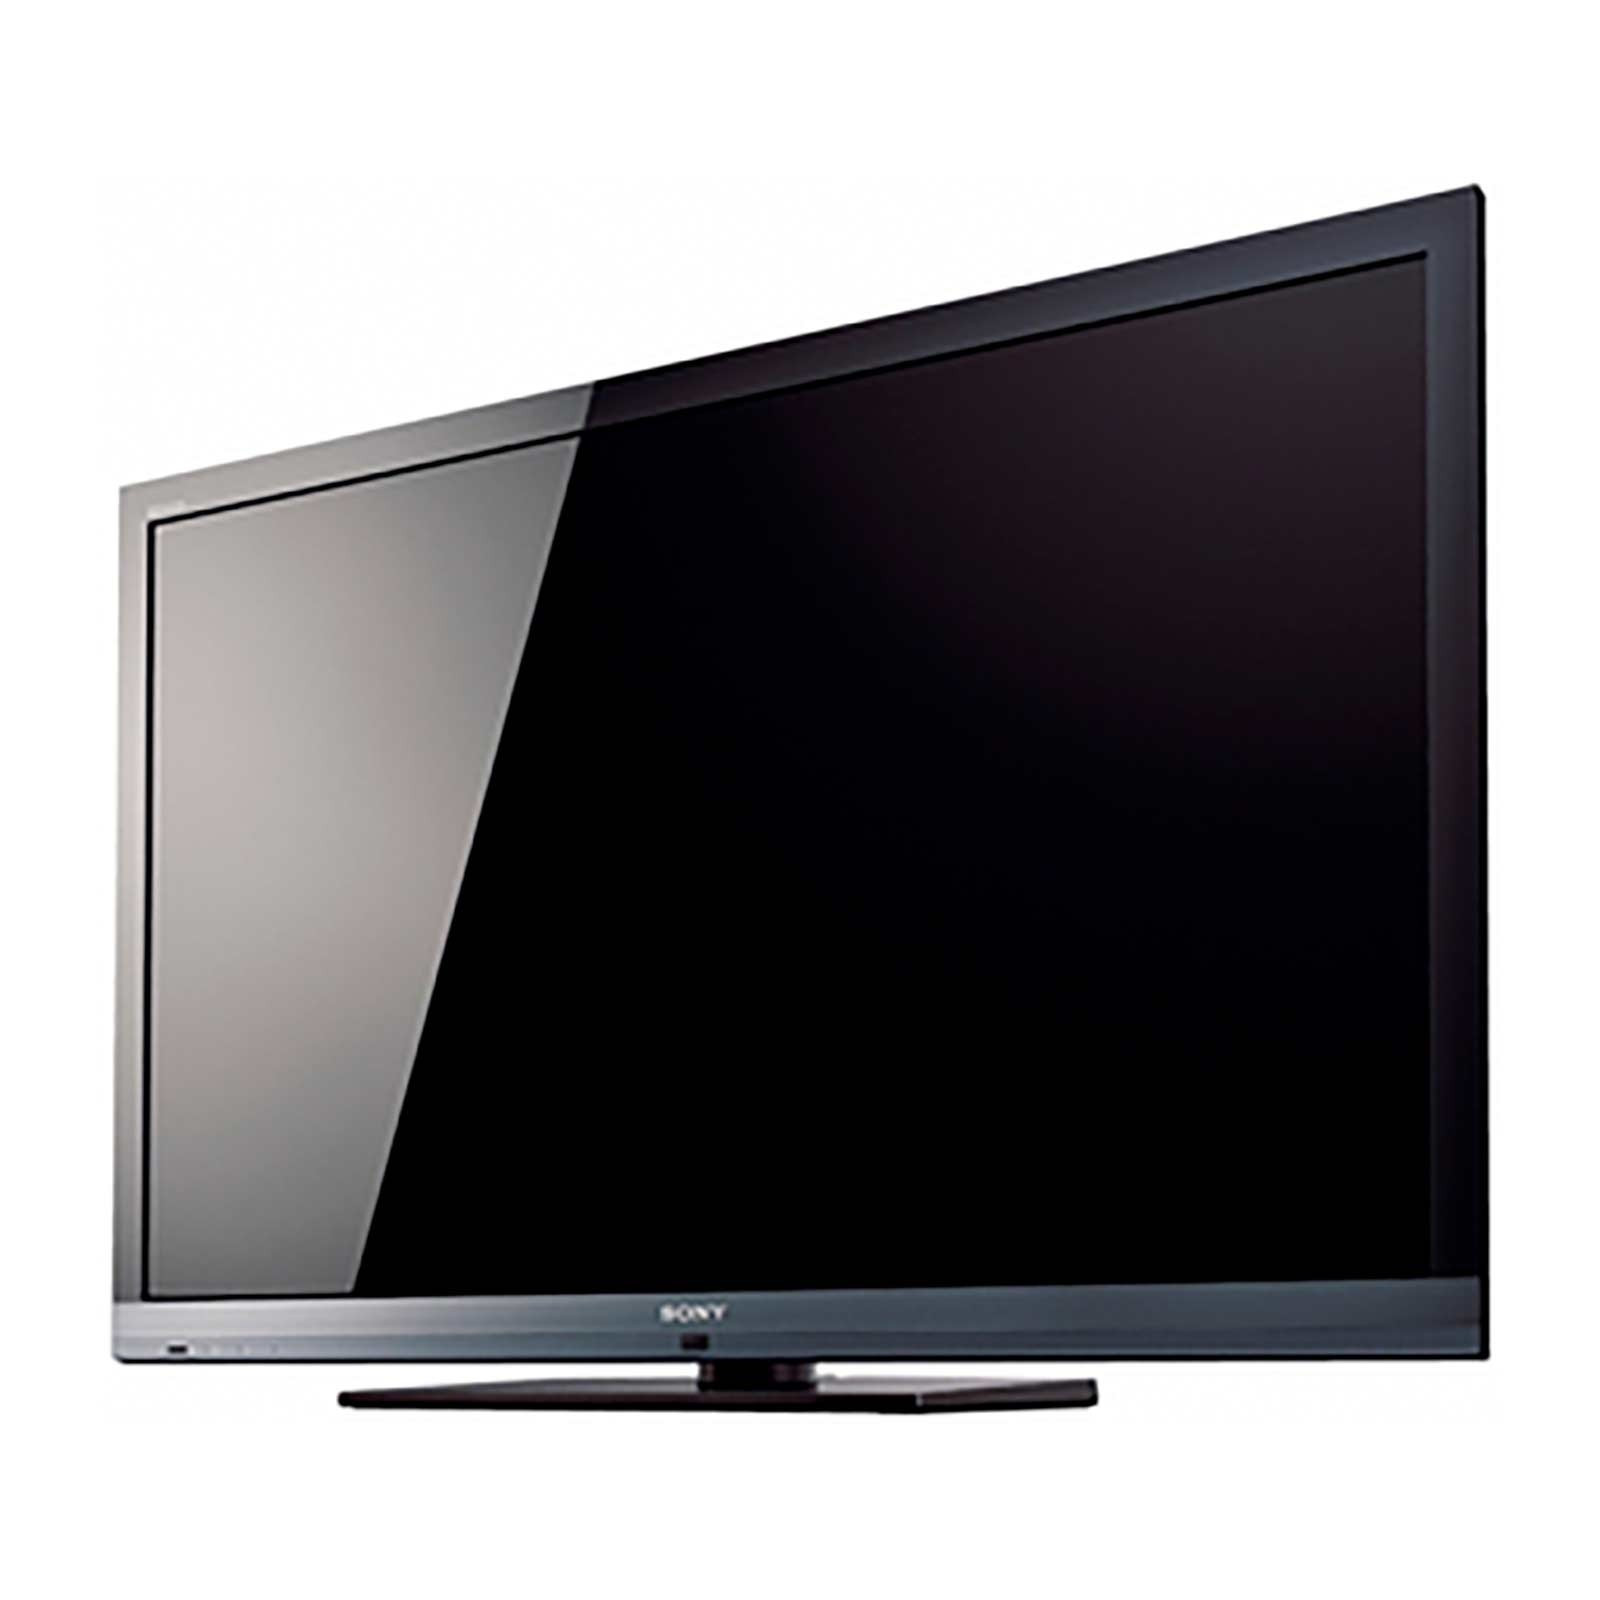 Televisor 32 Pulgadas Full Hd Gran Televisor Tv Lcd 32 sony Kdl 32ex715 Full Hd Tdt Usado Of 34  Brillante Televisor 32 Pulgadas Full Hd